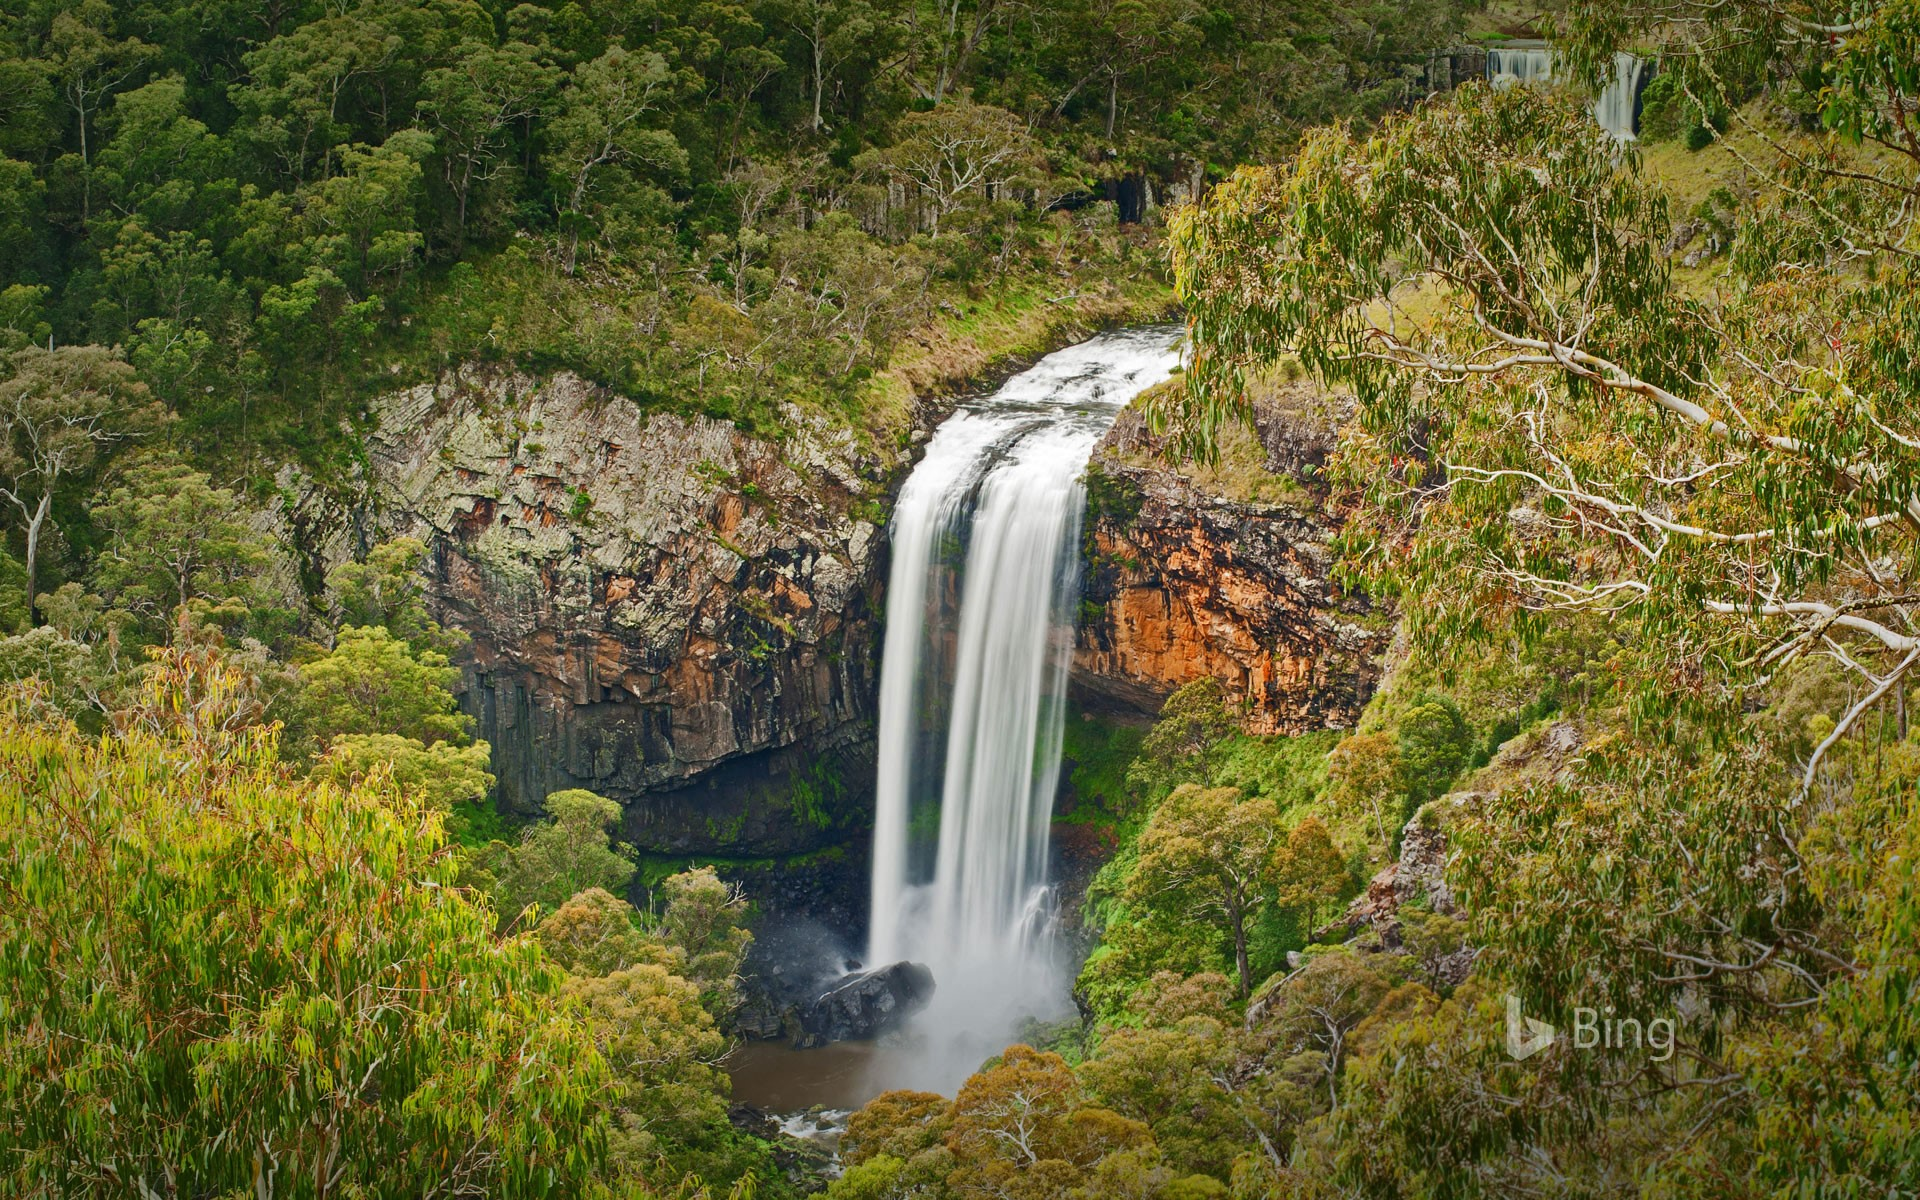 Ebor Falls in the Guy Fawkes River National Park of Australia